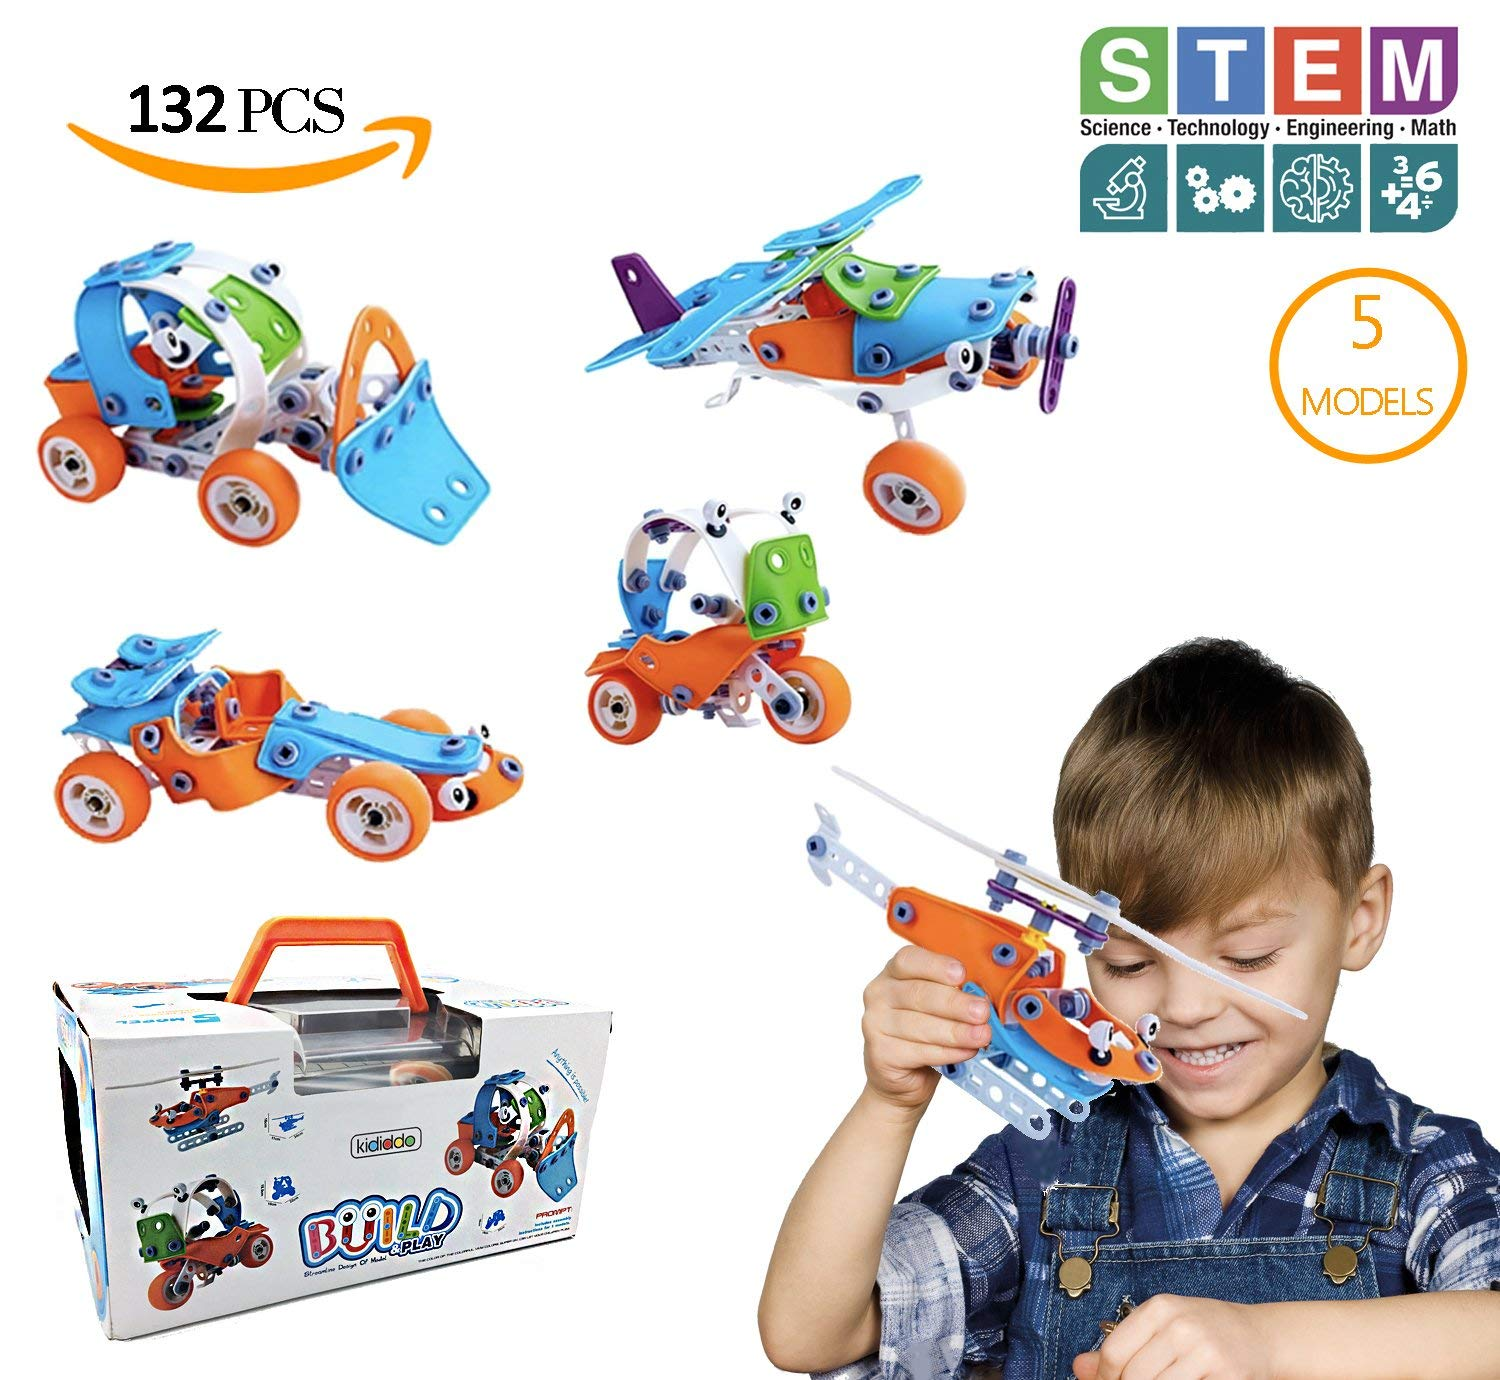 The educational stem set